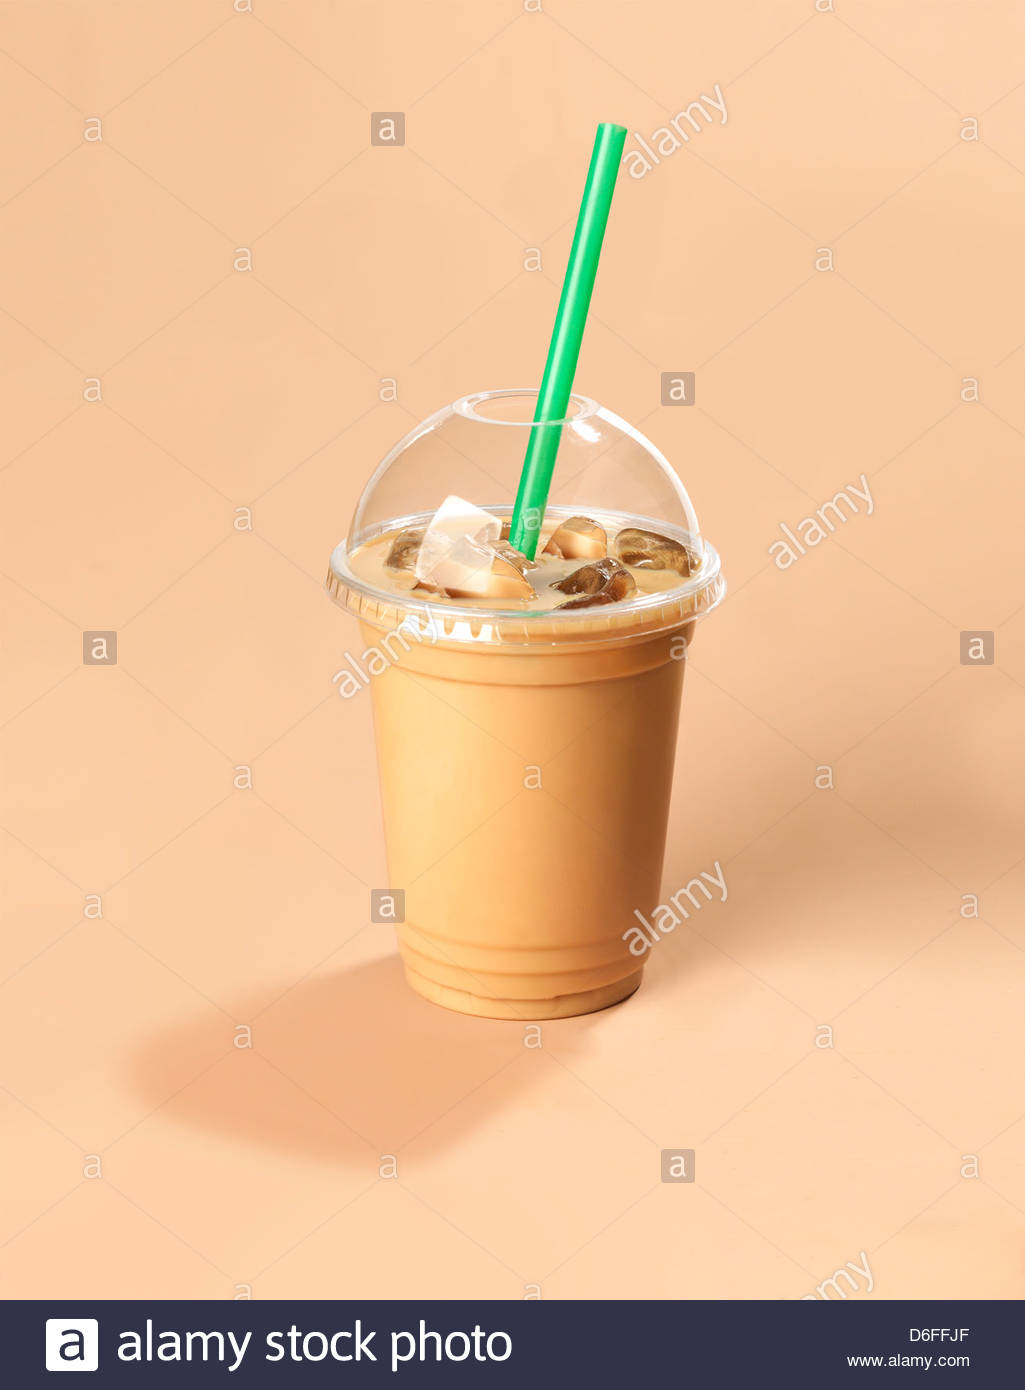 Iced Coffee drink - Stock Image